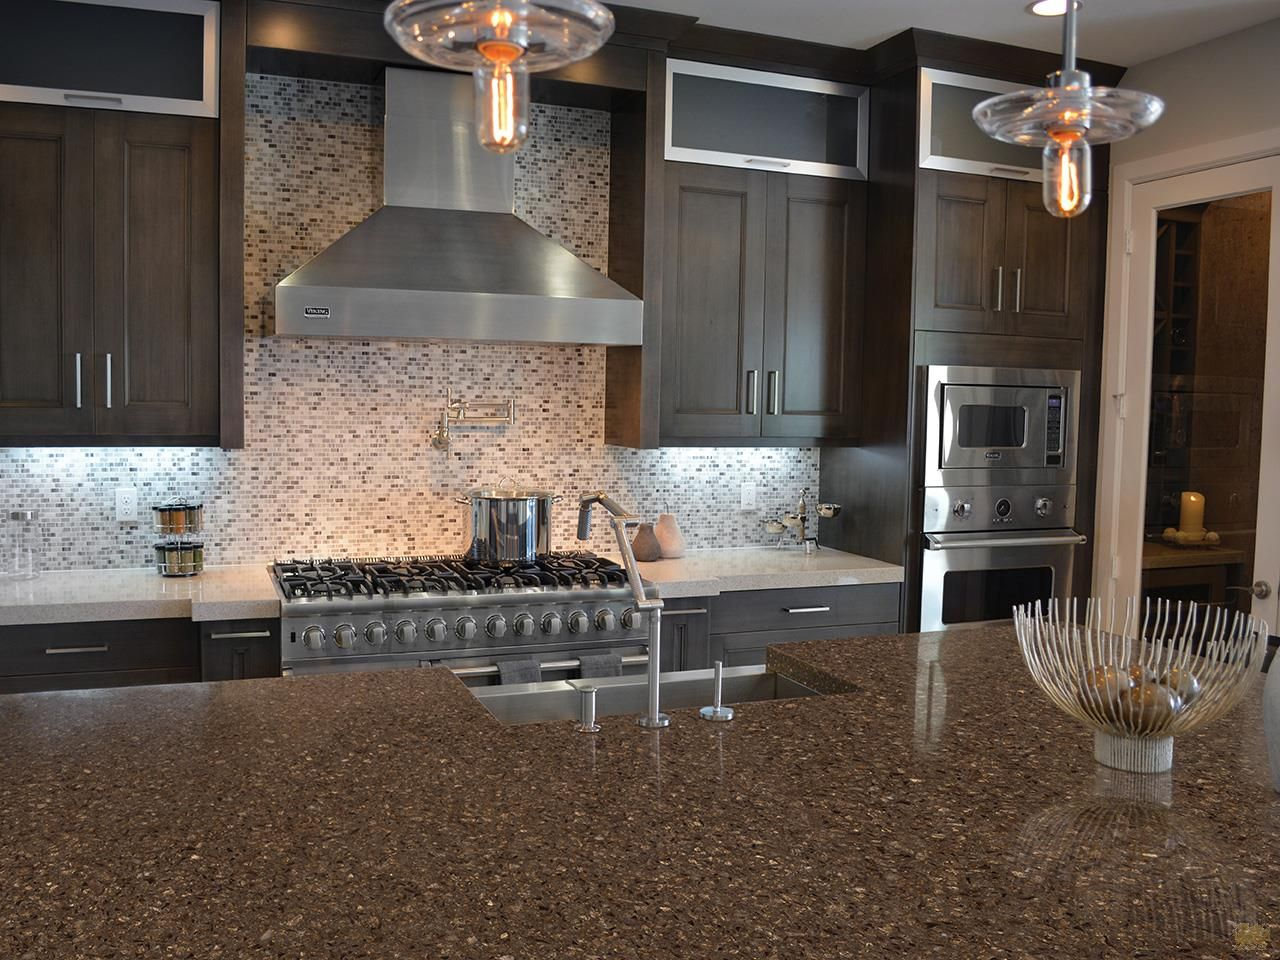 Countertop Photos And Countertop Ideas For Your Kitchen Or